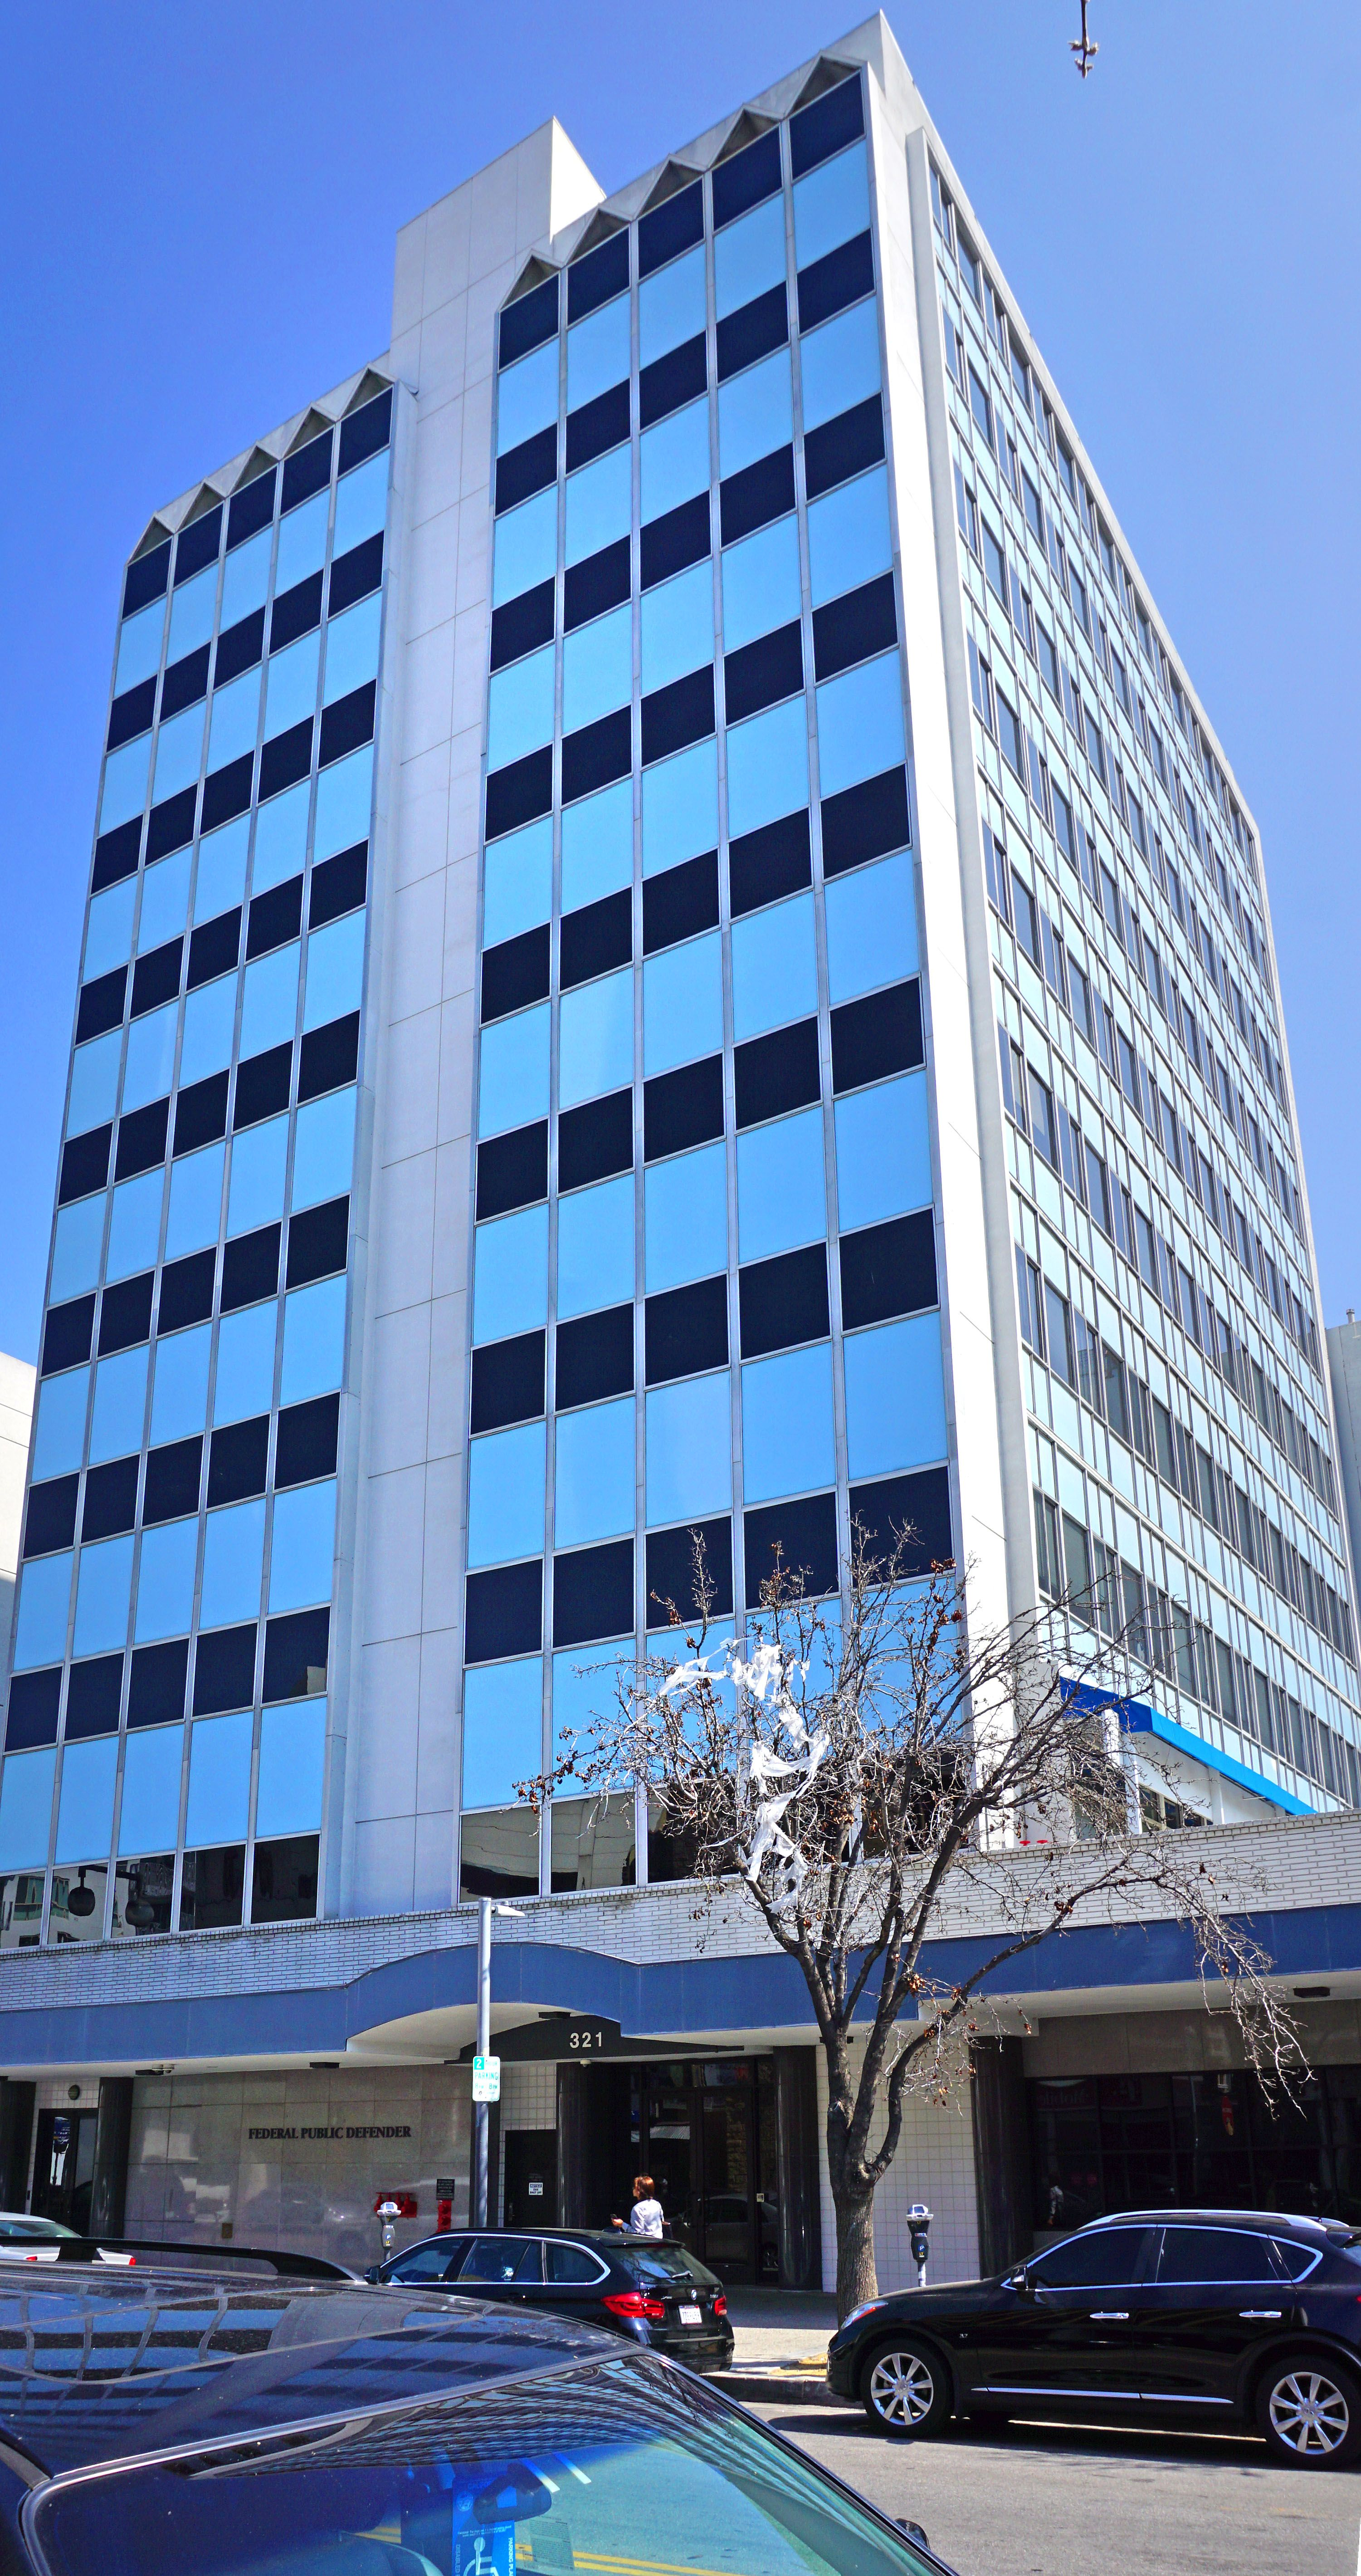 California Central Federal Public Defender Los Angeles Address Headquarters 321 East Second Street Los Angeles Ca Coastal Cities California Los Angeles